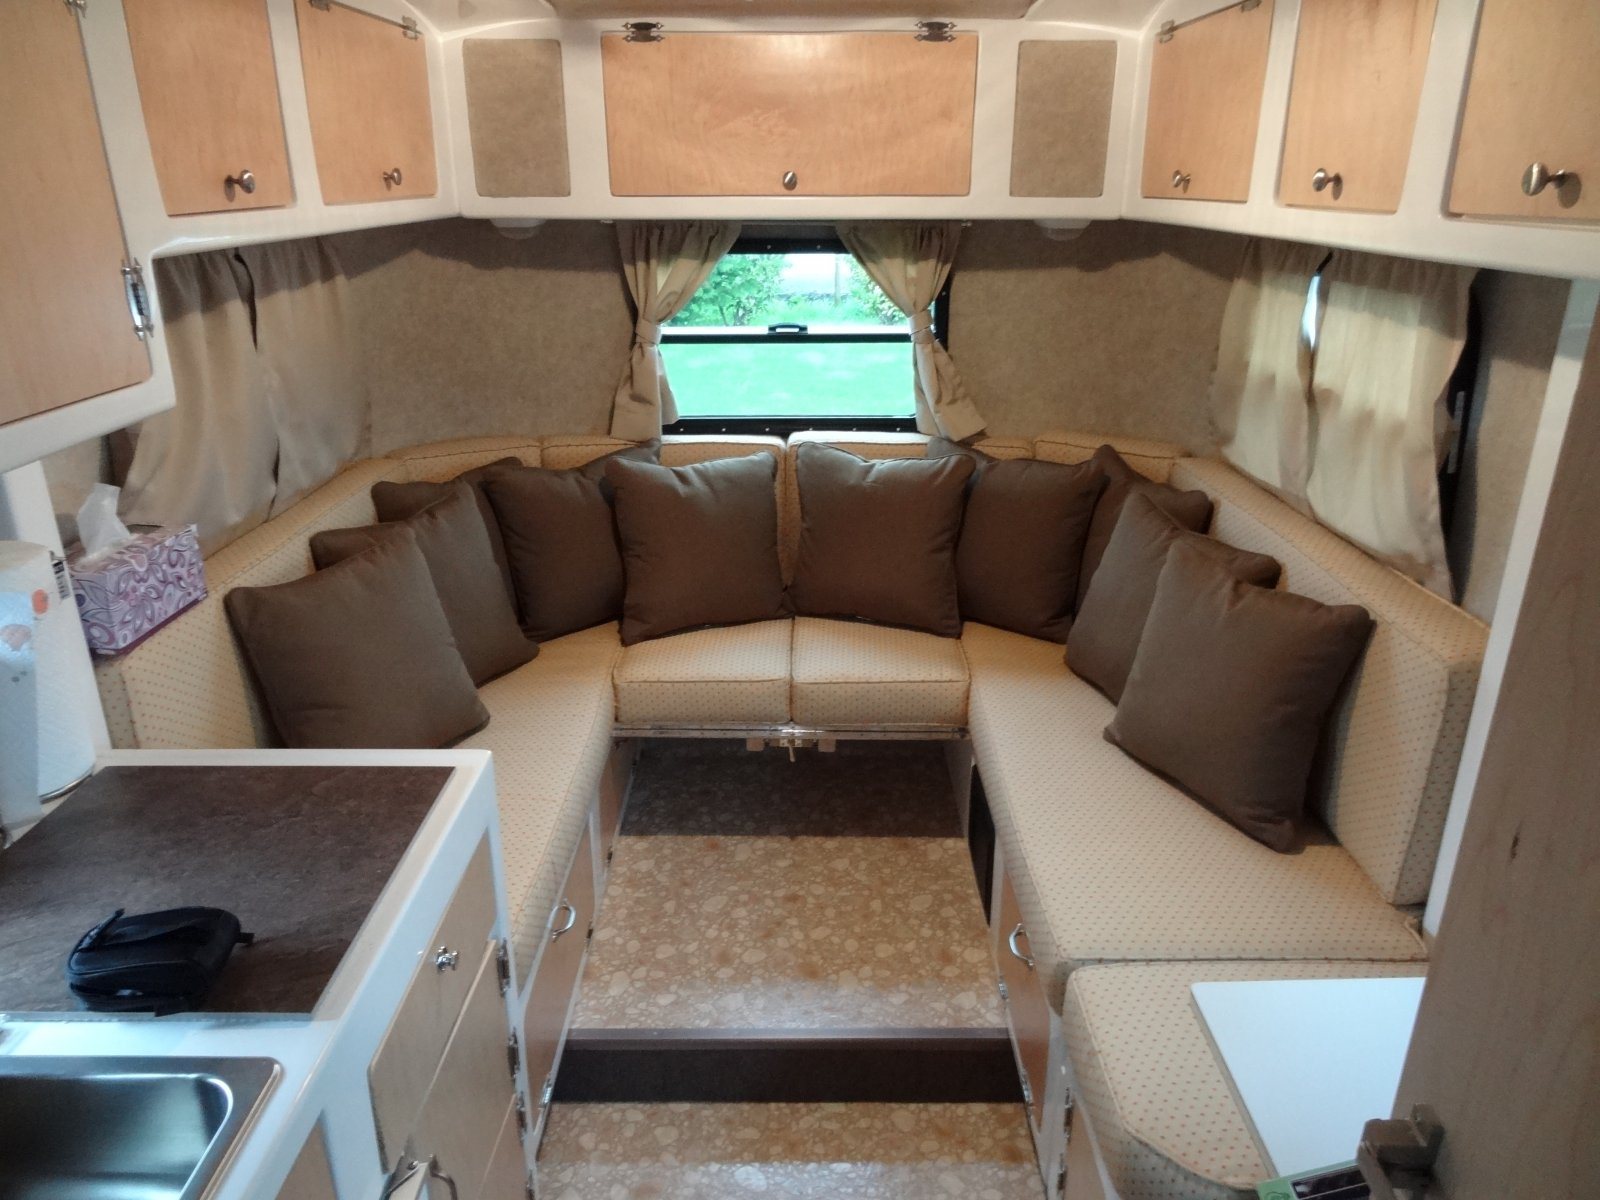 Conversion Van Interior Ideas Our van build on the